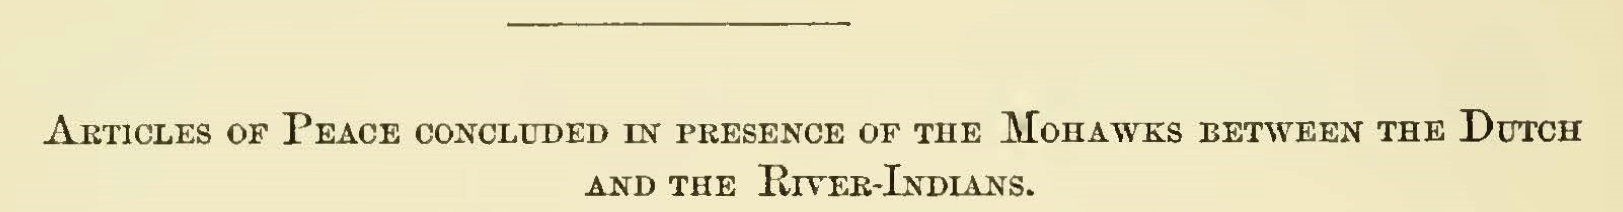 Doughty, Francis, Articles of Peace Title Page.jpg